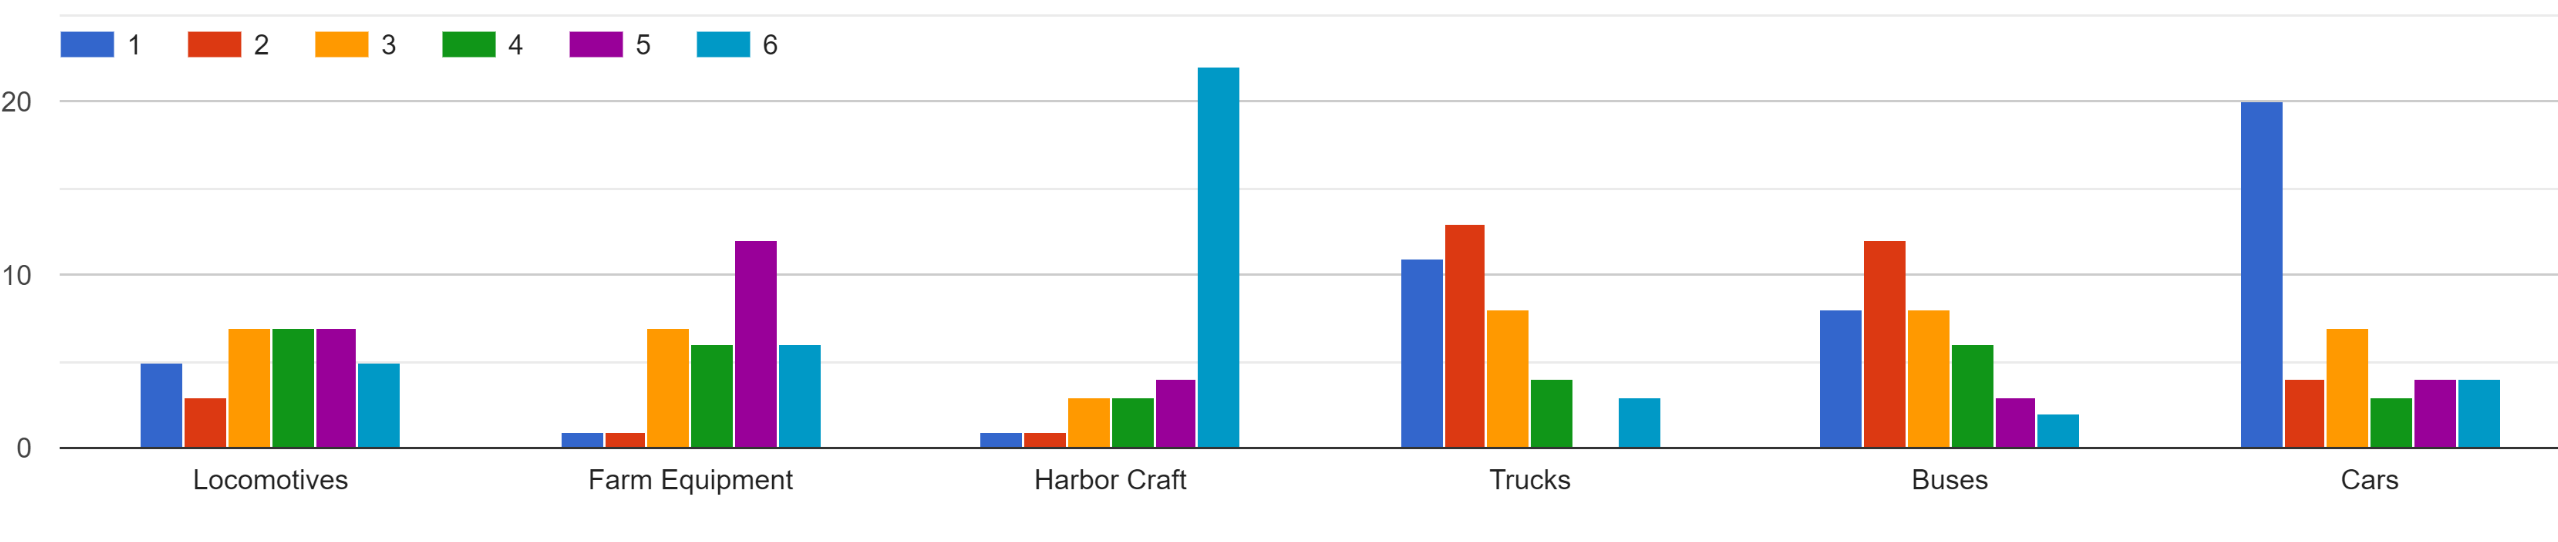 Graph showing individual needs ranking #1 Cars, #2 Trucks, #3Buses, #4 Locomotives, #5 Farm Equipment, #6 Harbor Craft